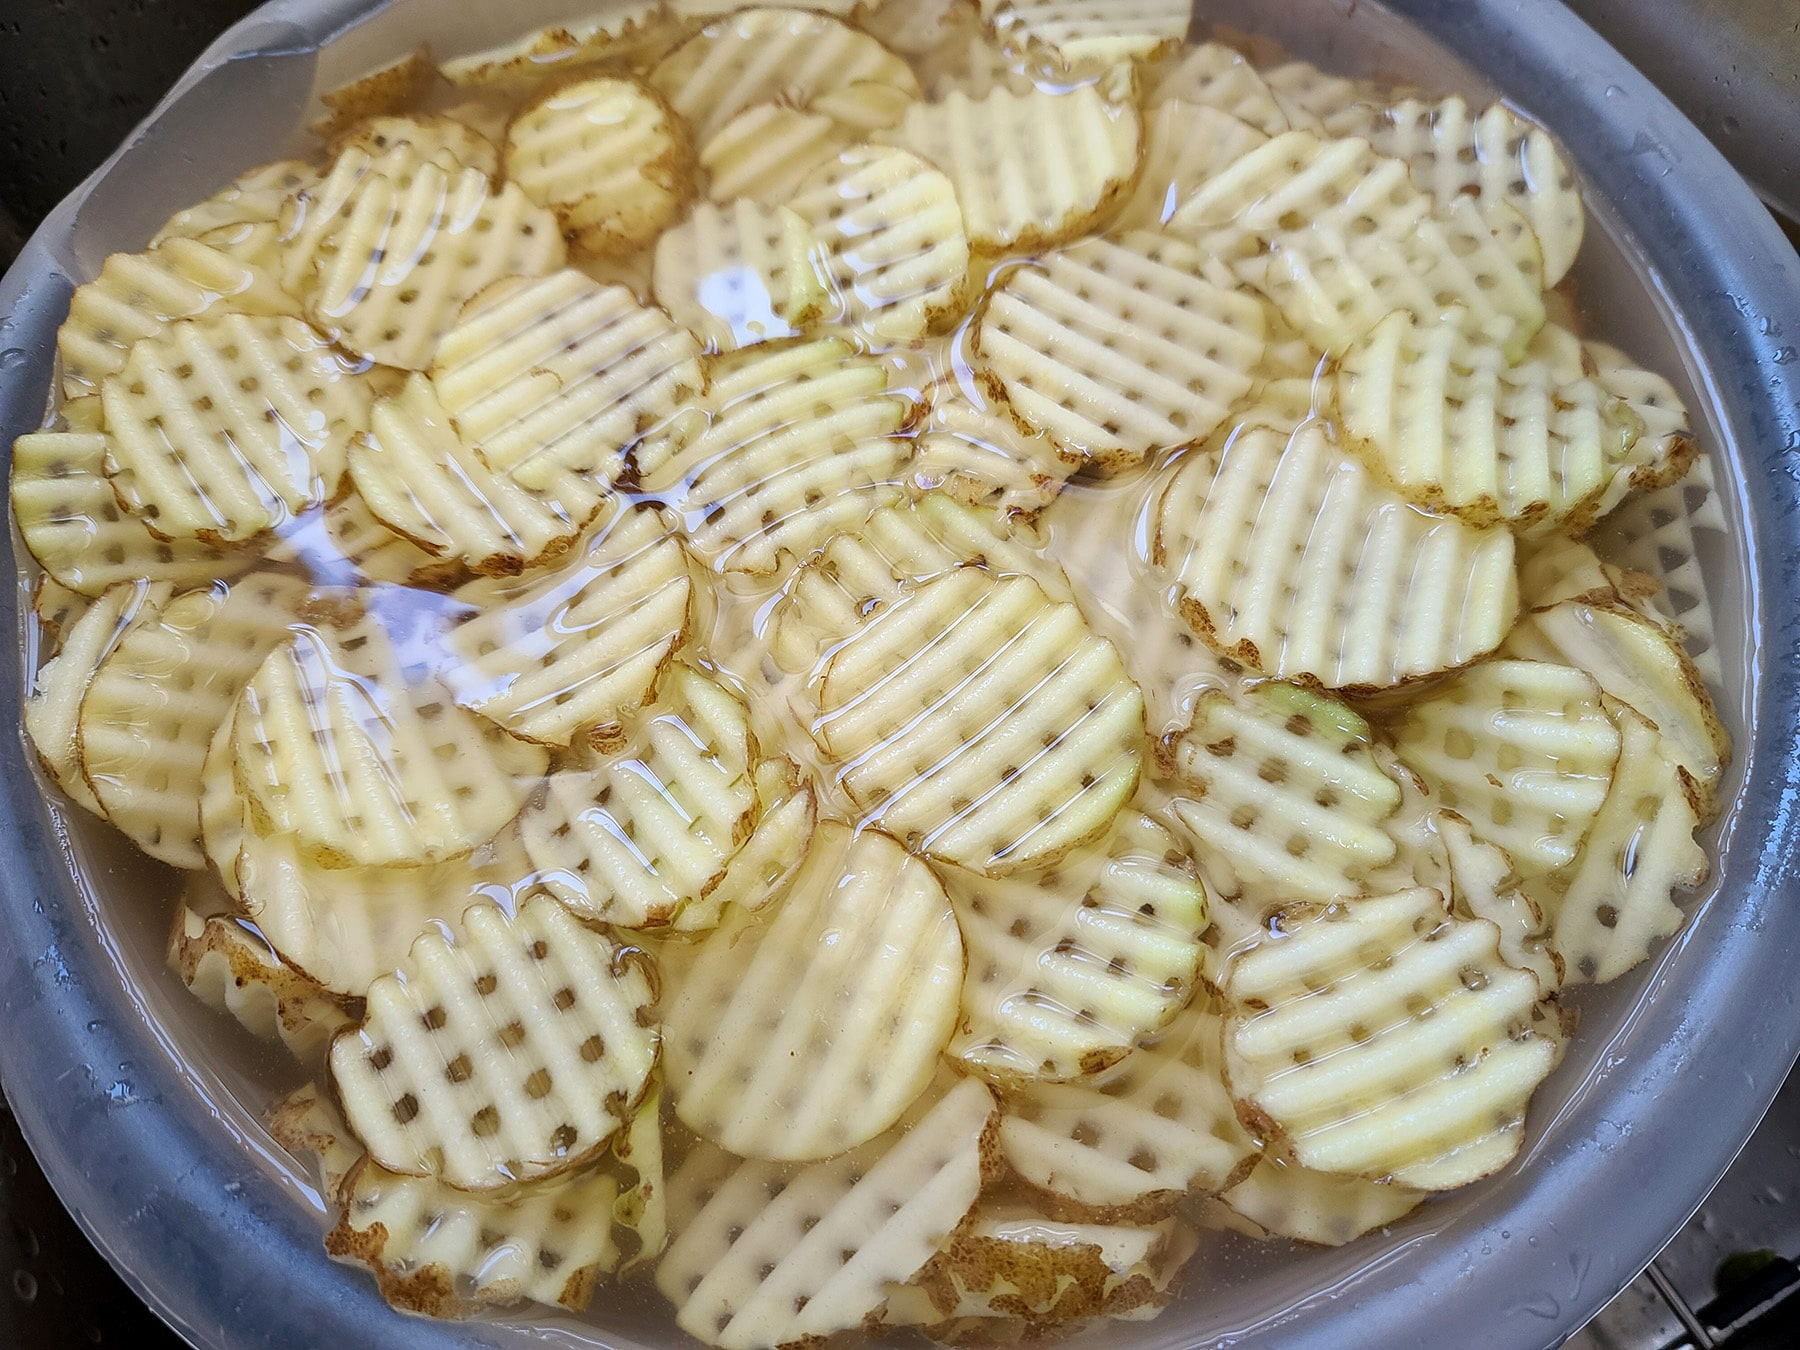 A large white bowl of waffle cut potatoes soaking in water.